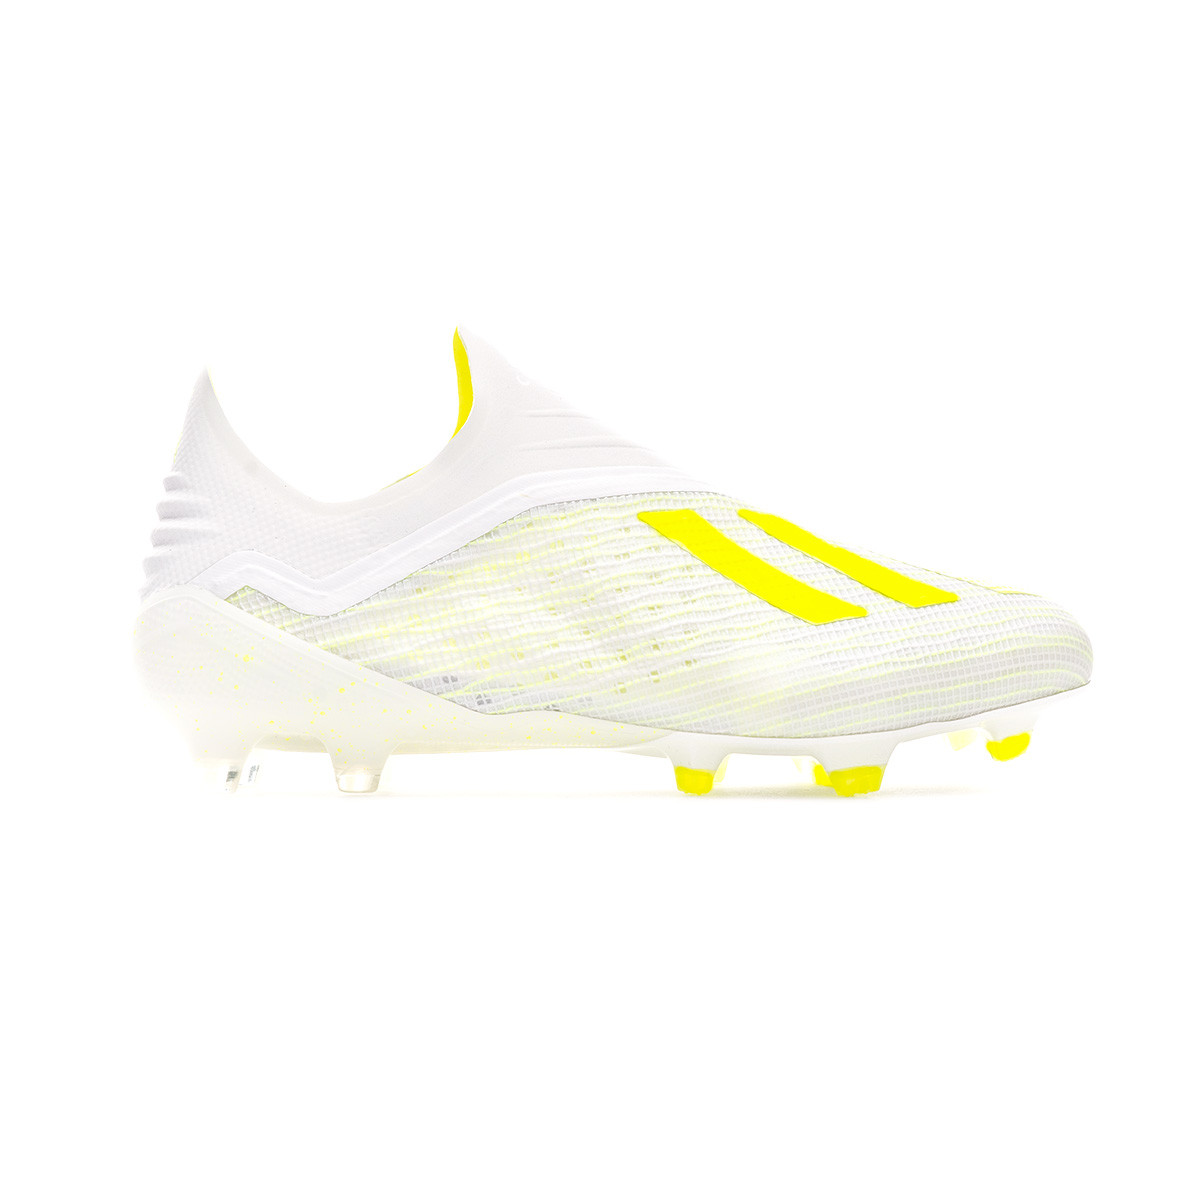 3e470e6155b Football Boots adidas X 18+ FG White-Solar yellow-Off white - Tienda de  fútbol Fútbol Emotion